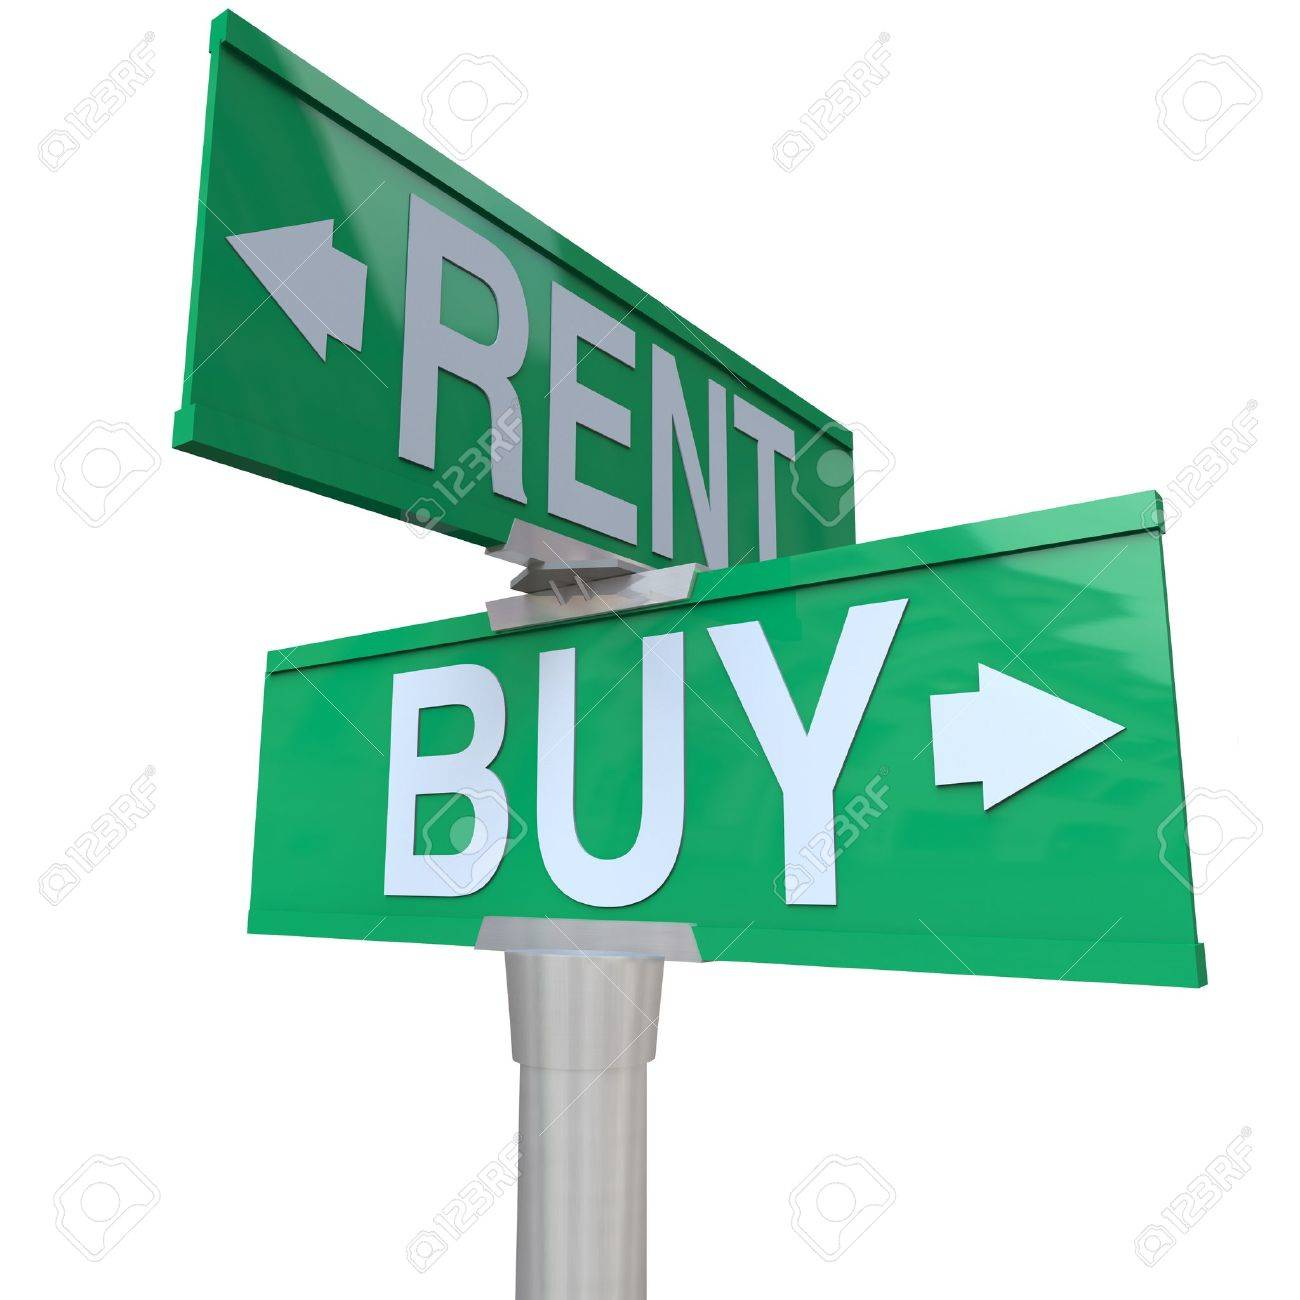 A green two-way street sign pointing to Buy and Rent, symbolizing being at a crossroads and deciding between renting a house, car or other object versus the benefits of buying Stock Photo - 9209549